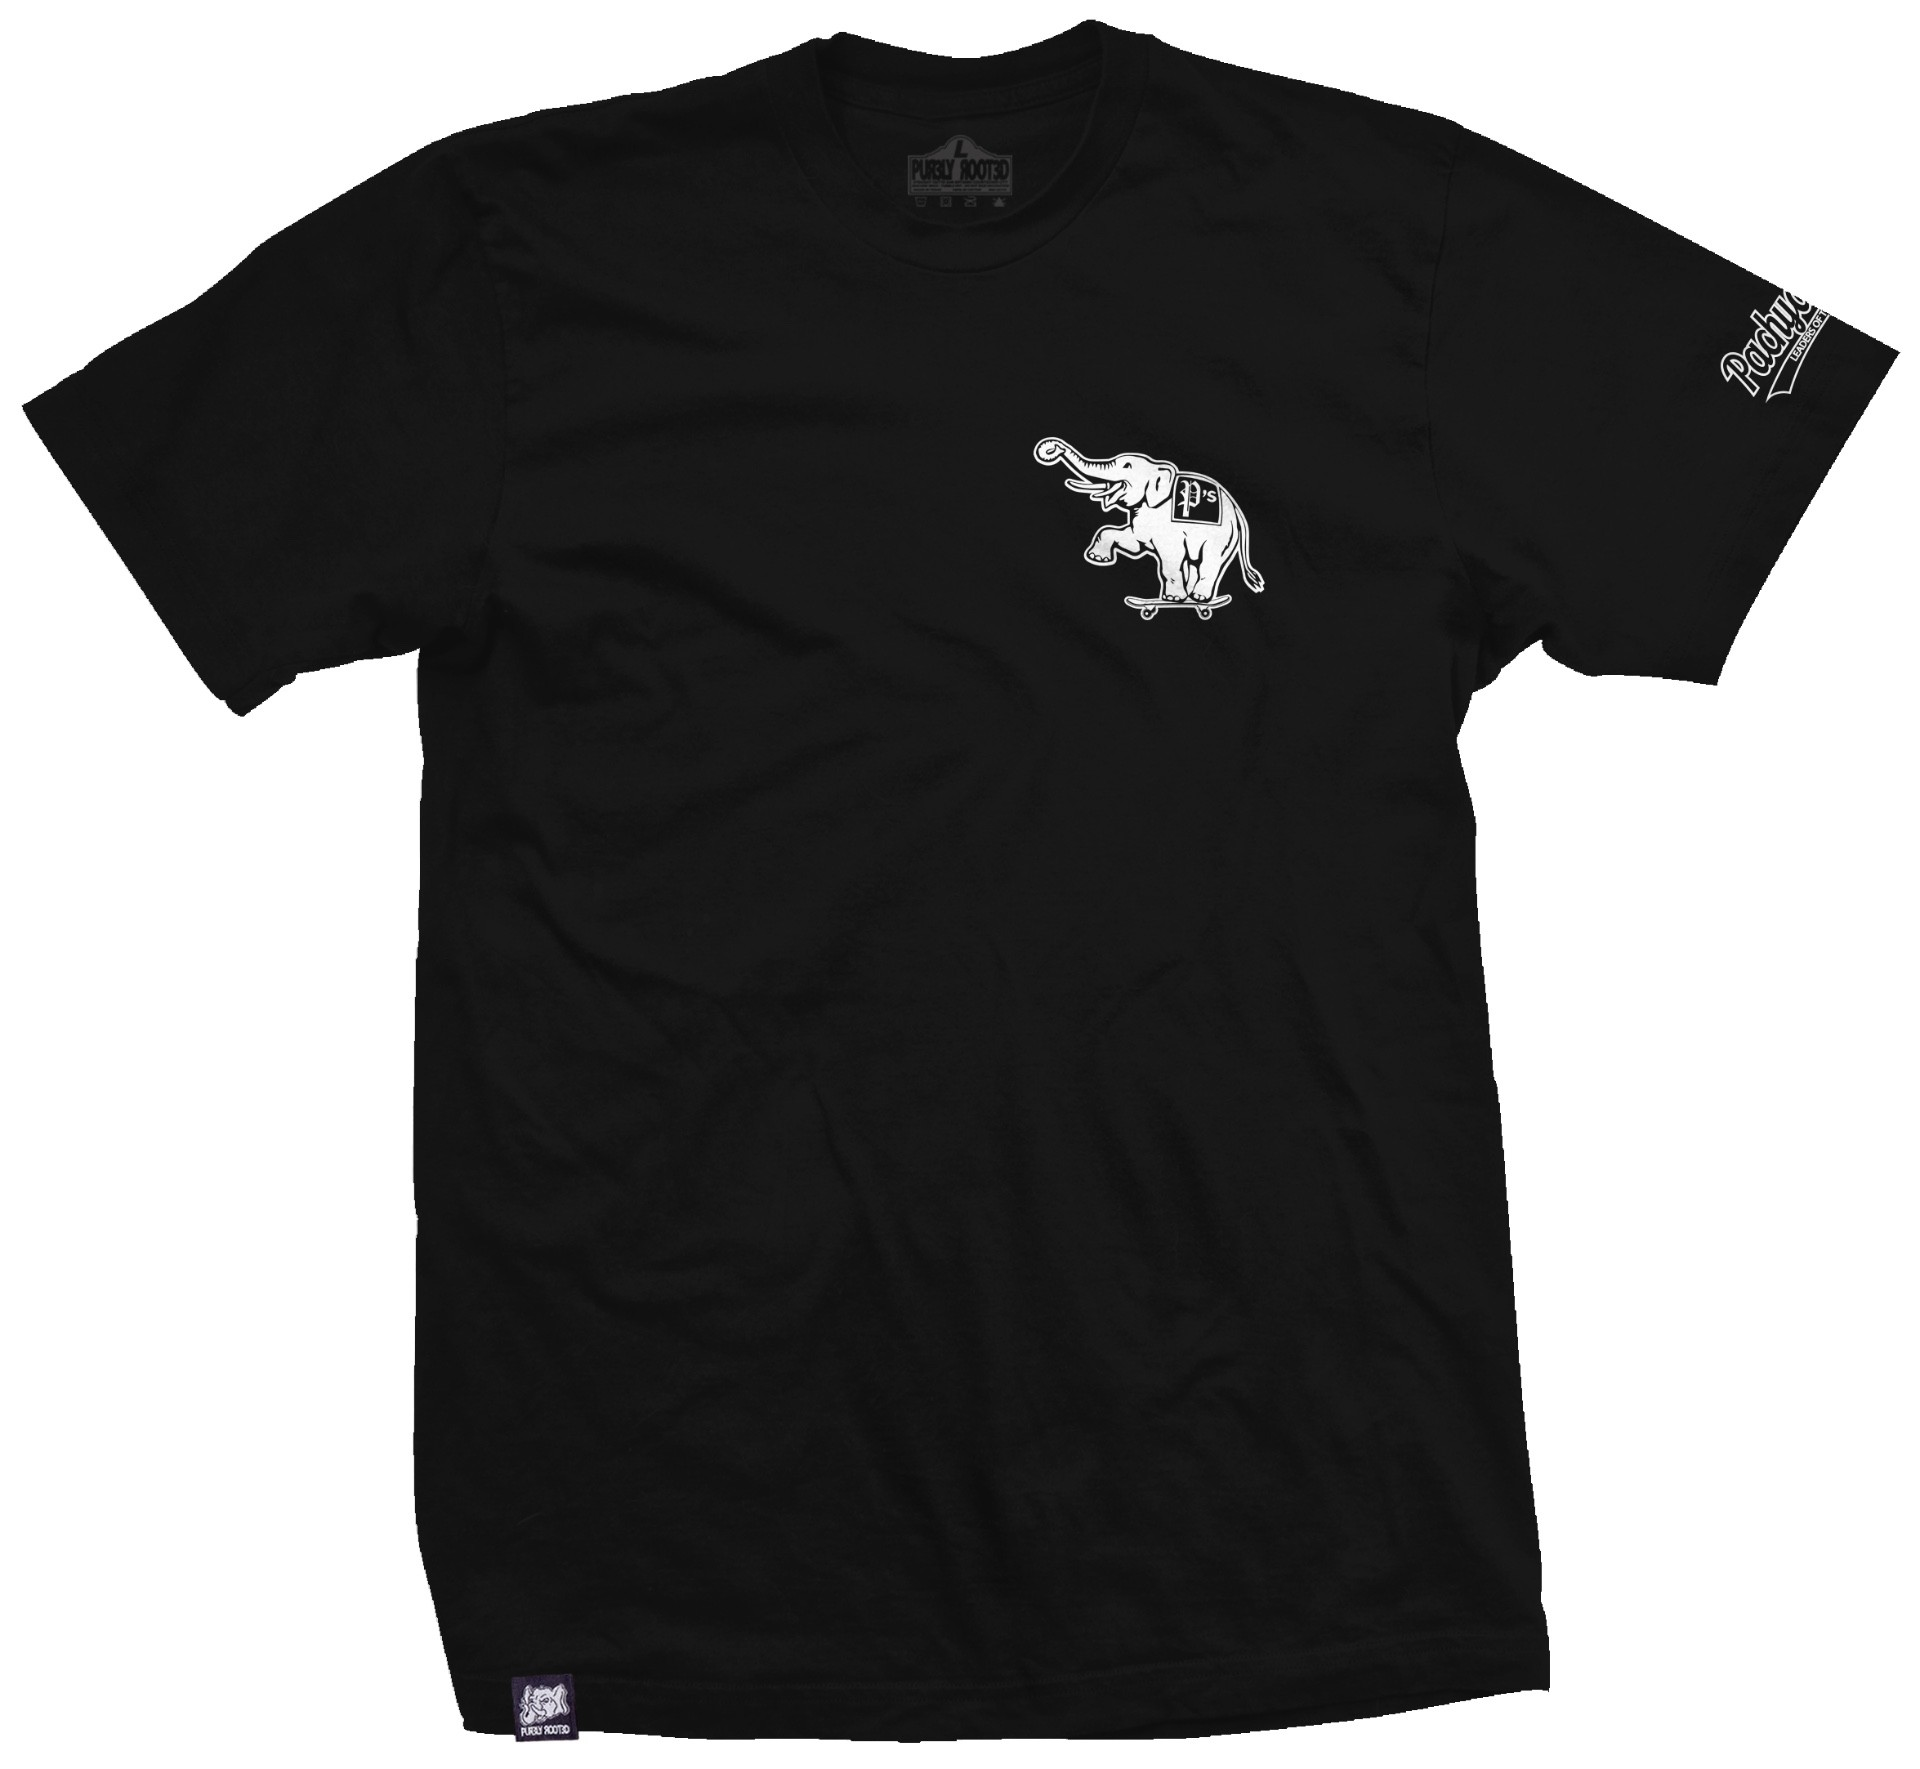 Oakland P's Tee Black front